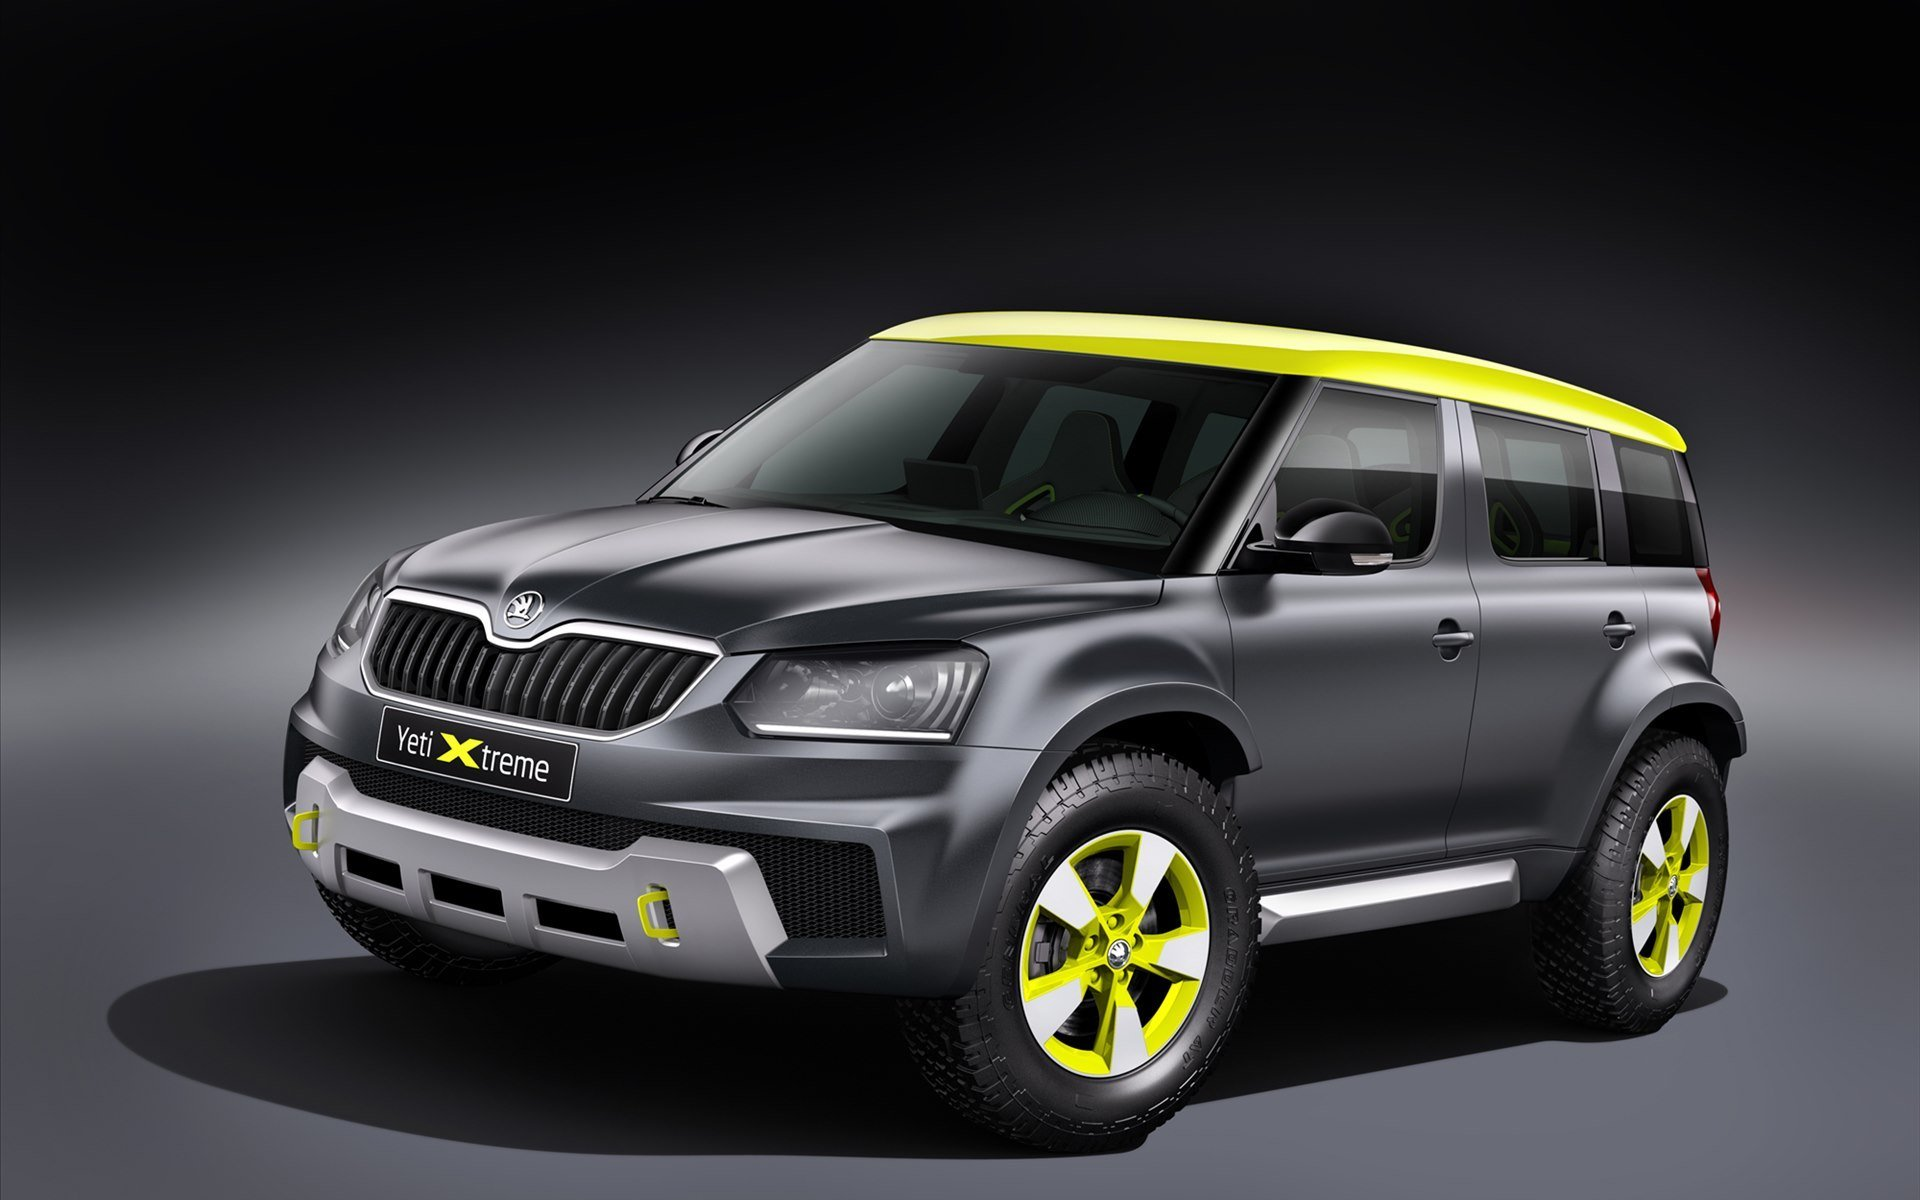 Latest 2014 Skoda Yeti Xtreme Concept Wallpaper Hd Car Free Download